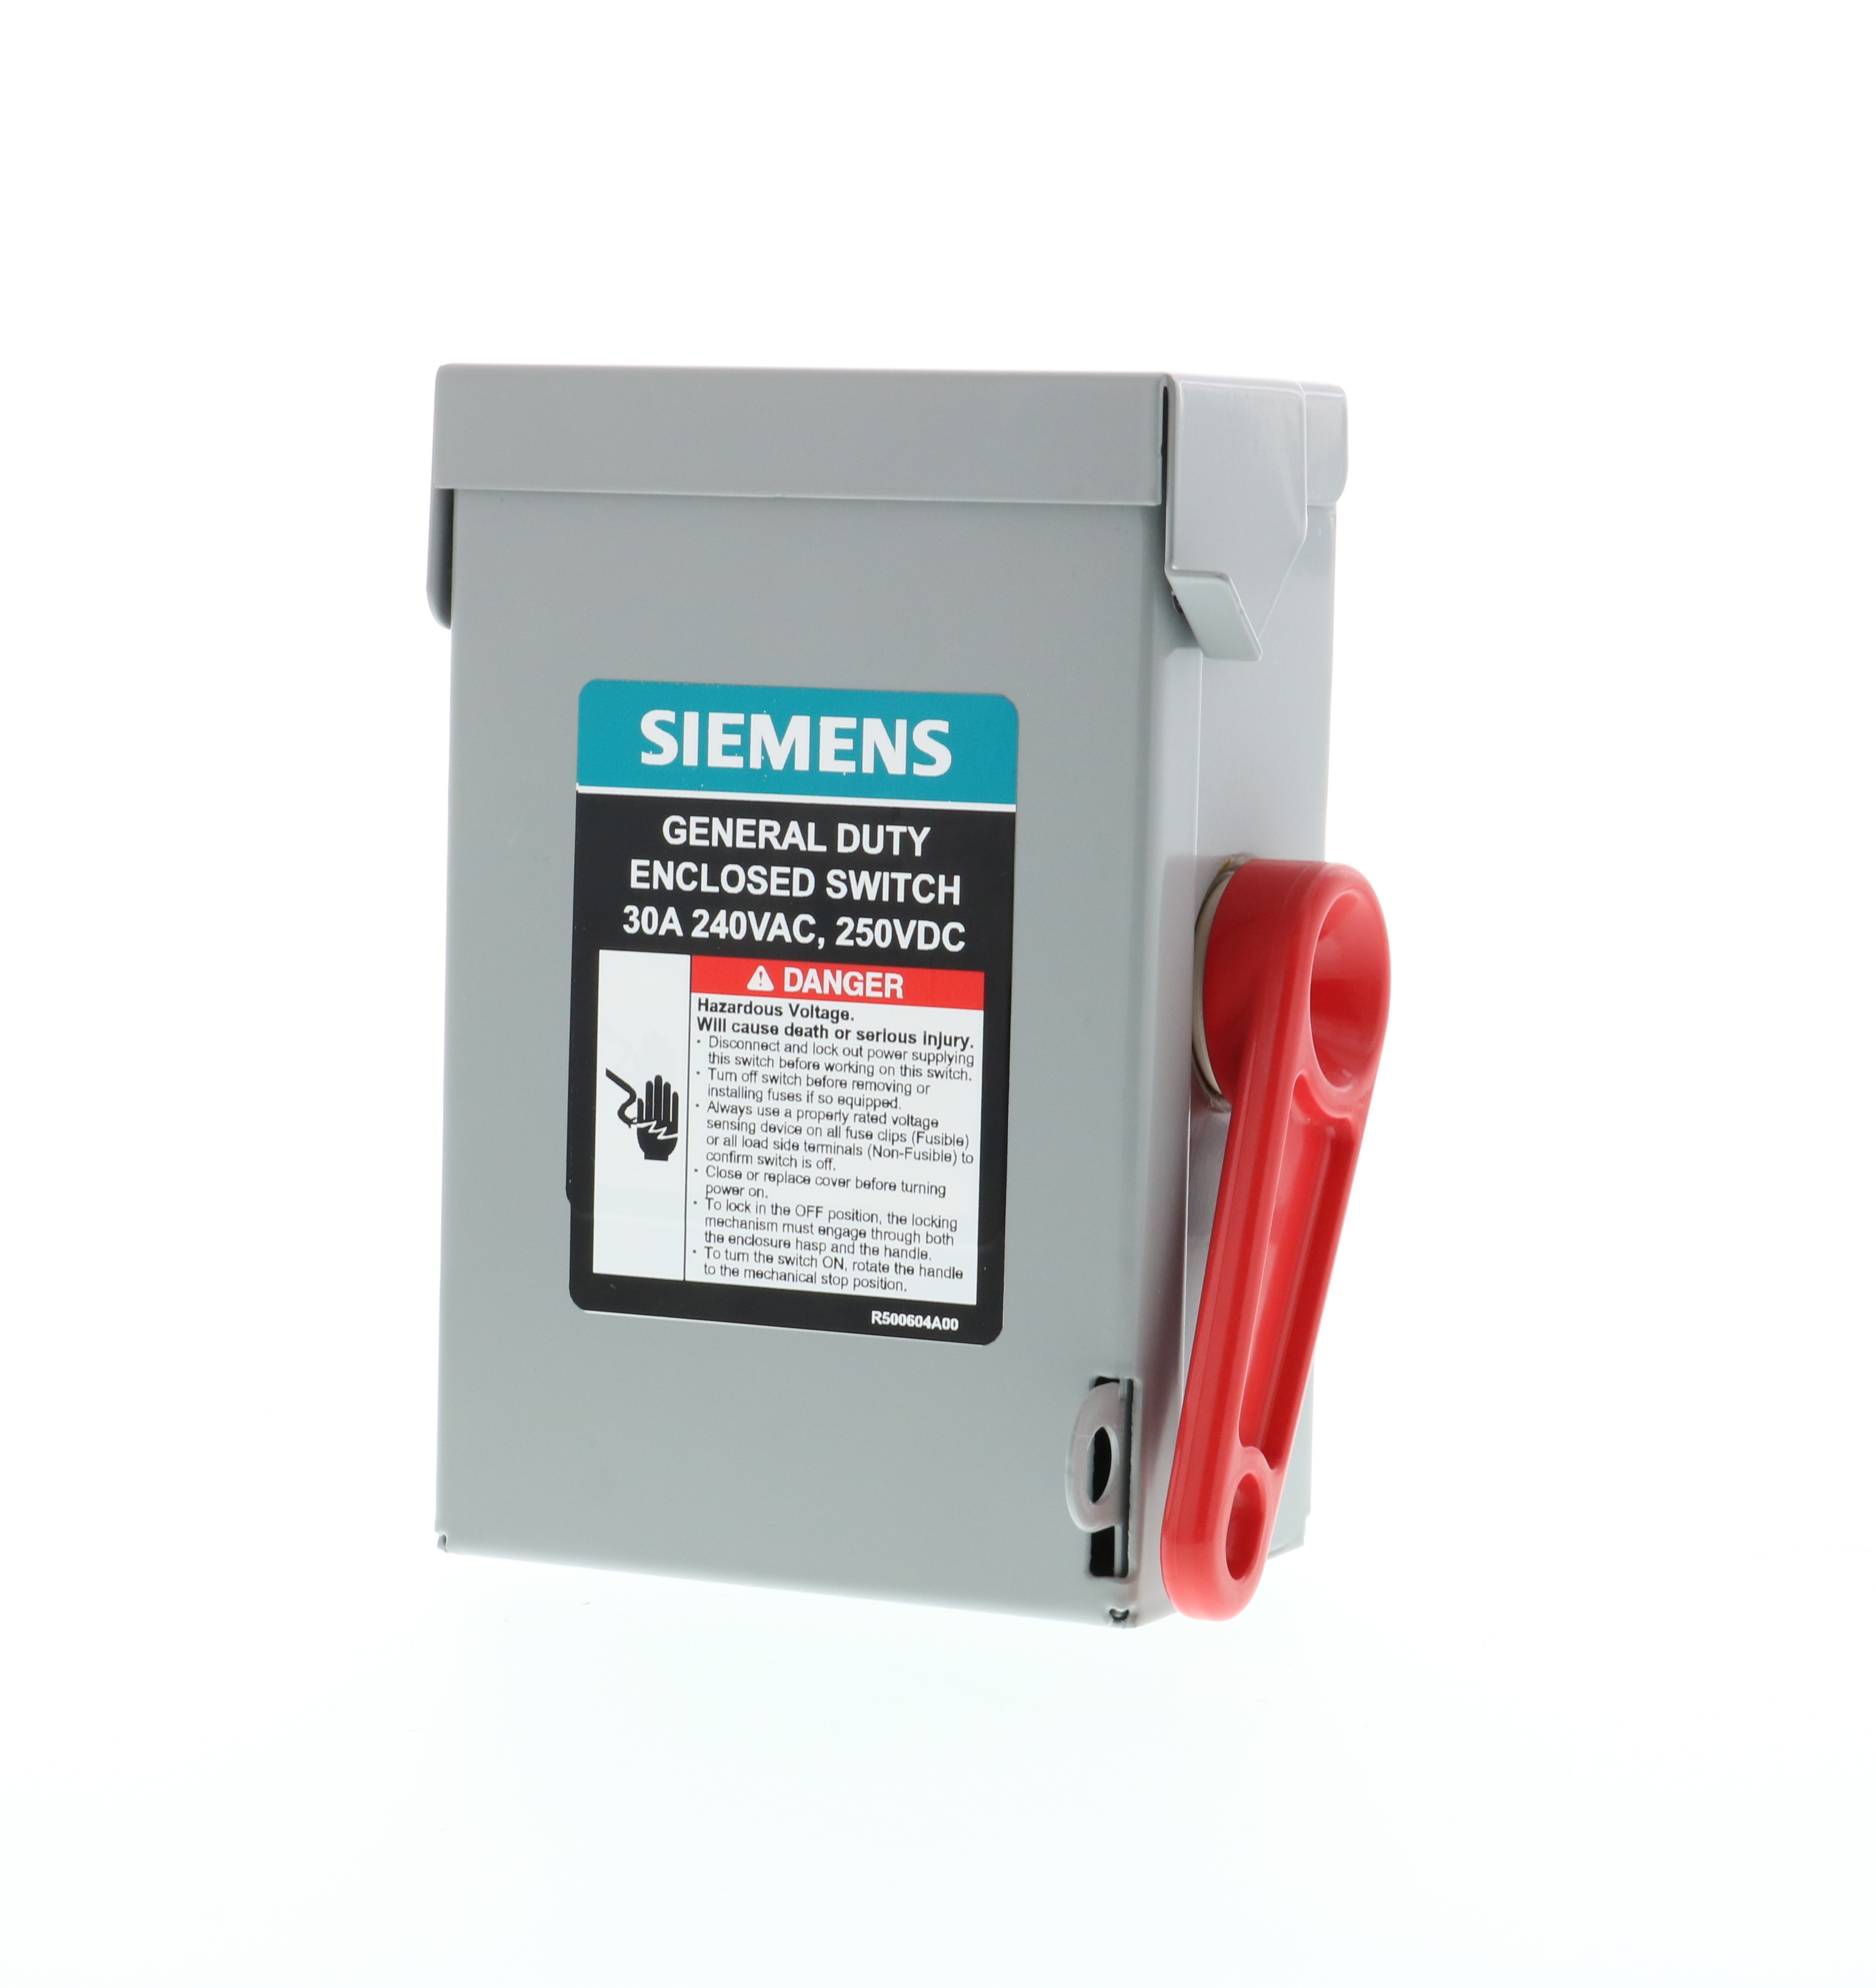 Siemens GNF321A A Series Type VBII Enclosed Low Voltage Non-Fused General Duty Safety Switch, 240 VAC, 30 A, 3 hp, 7-1/2 hp, 5 hp, 3 Poles